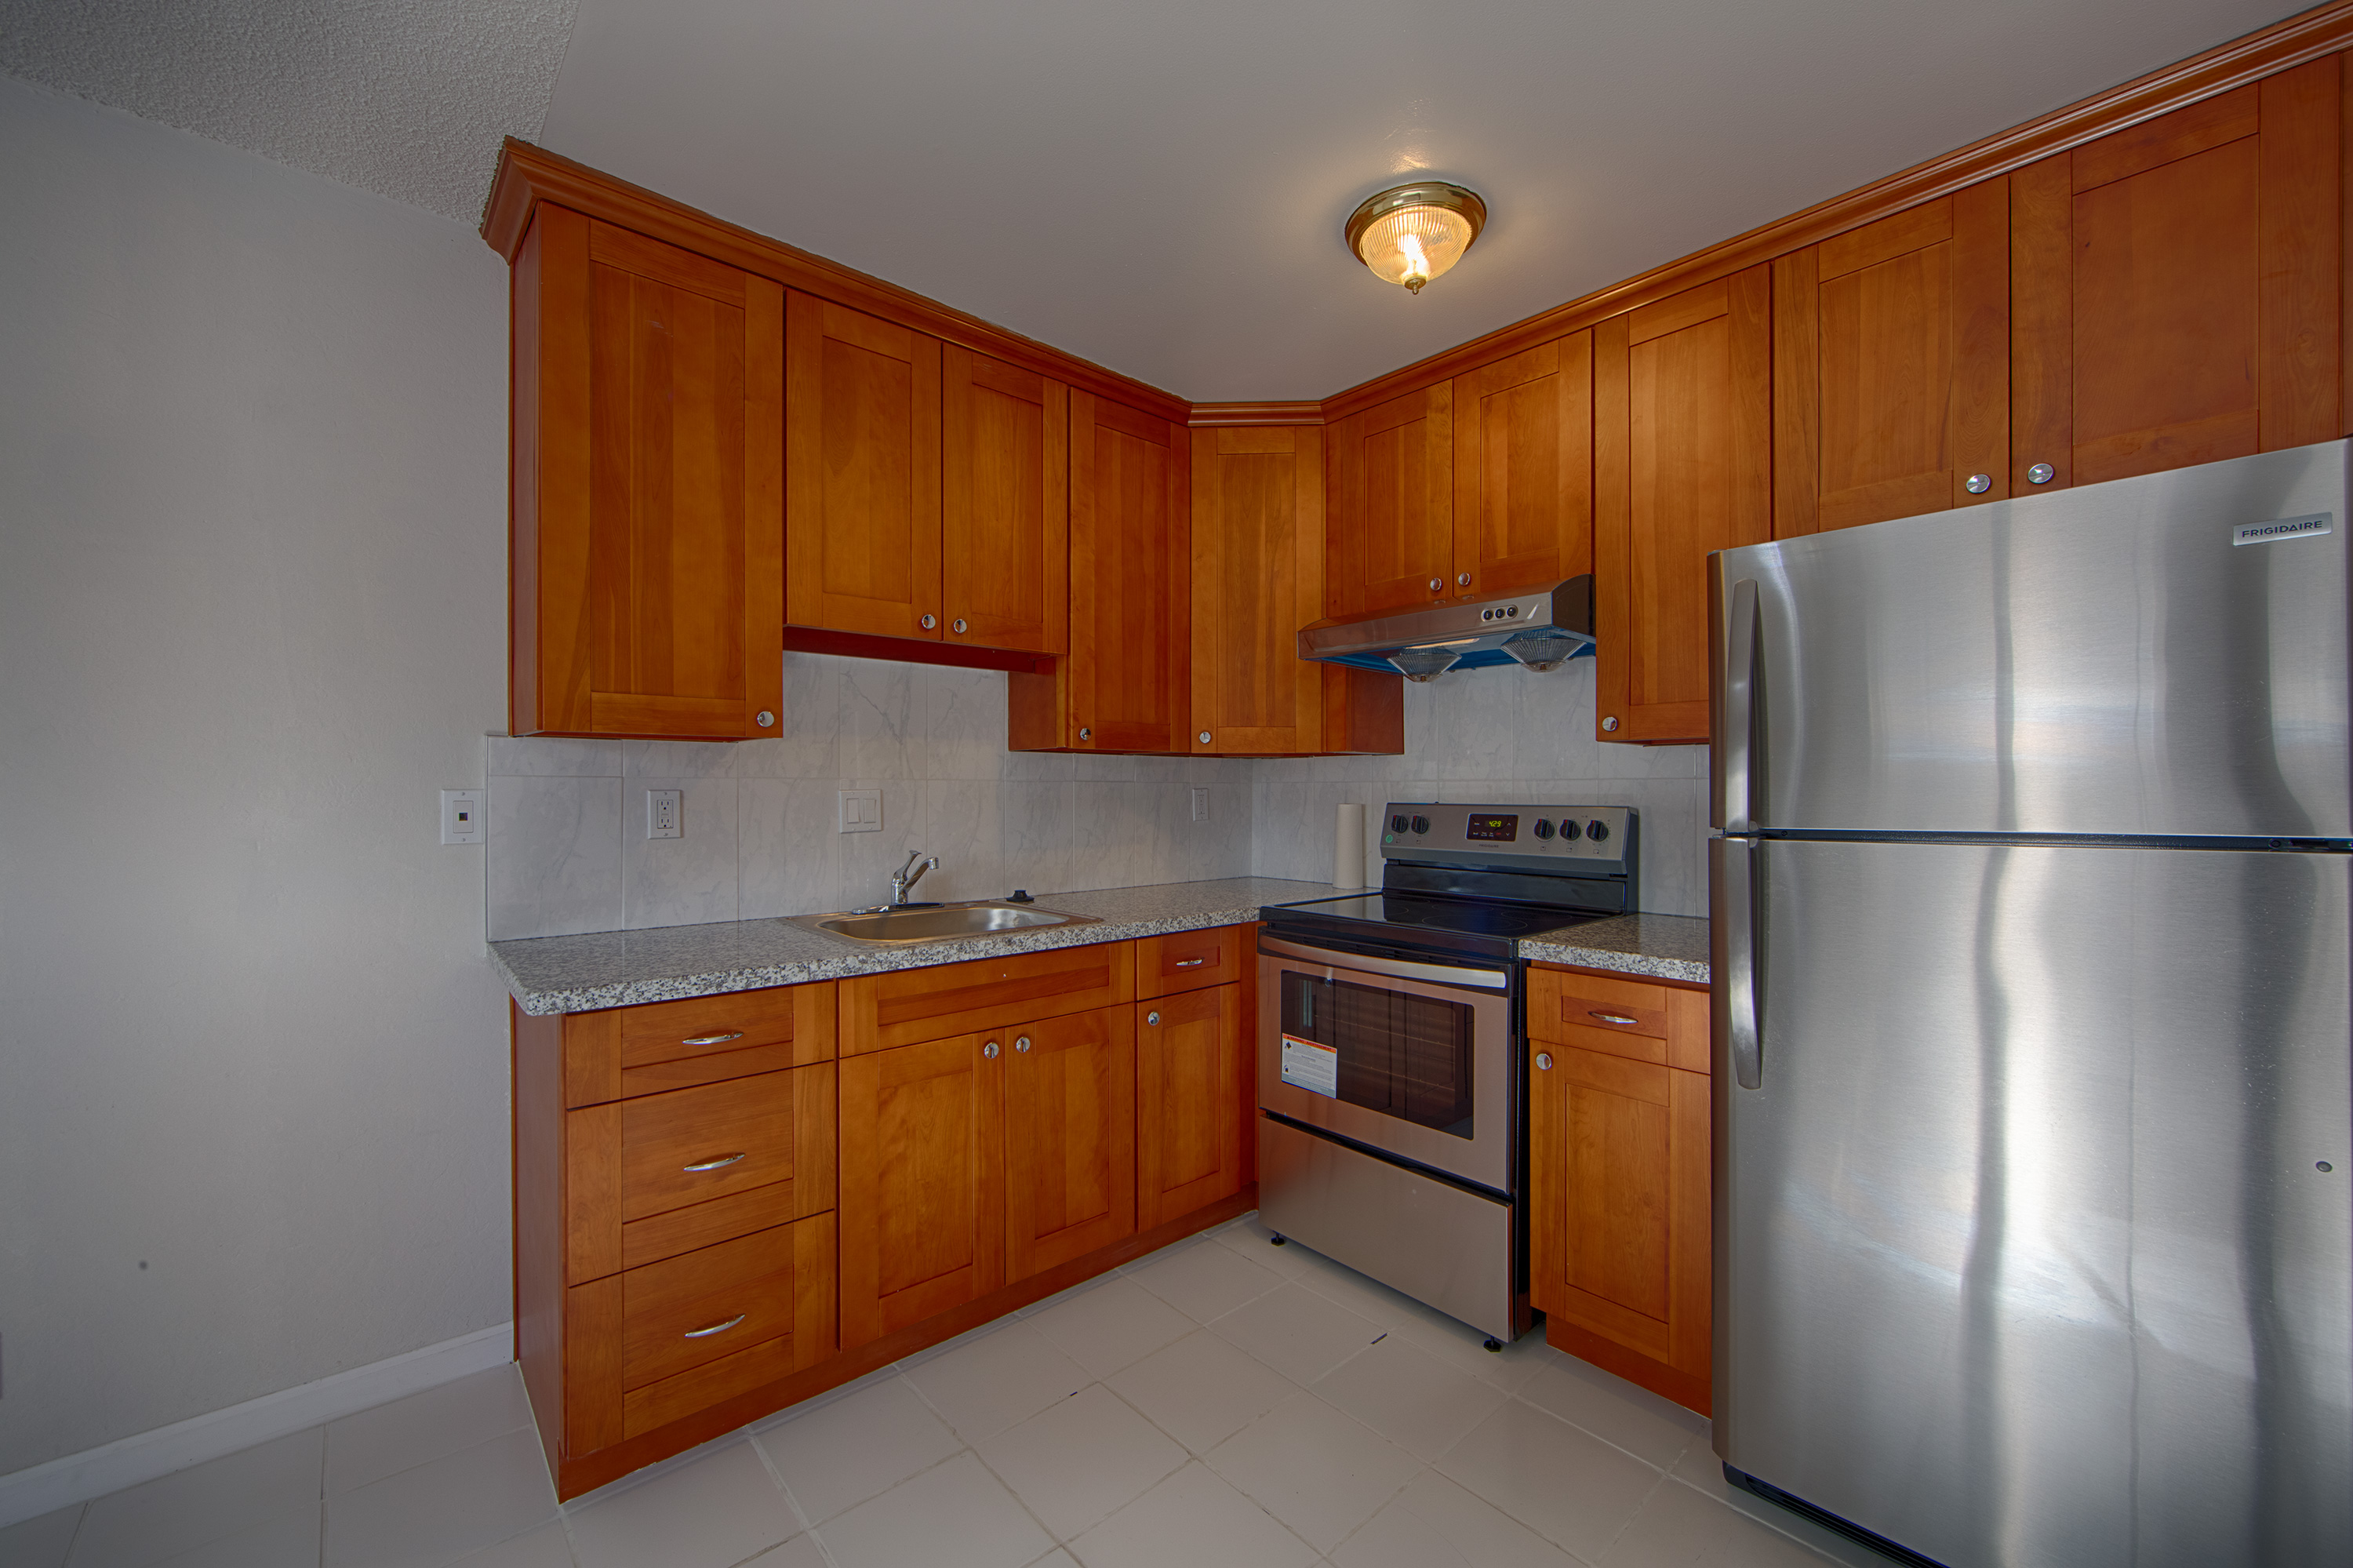 1662 Ontario Dr, Sunnyvale 94087 - Unit 2 Kitchen (A)